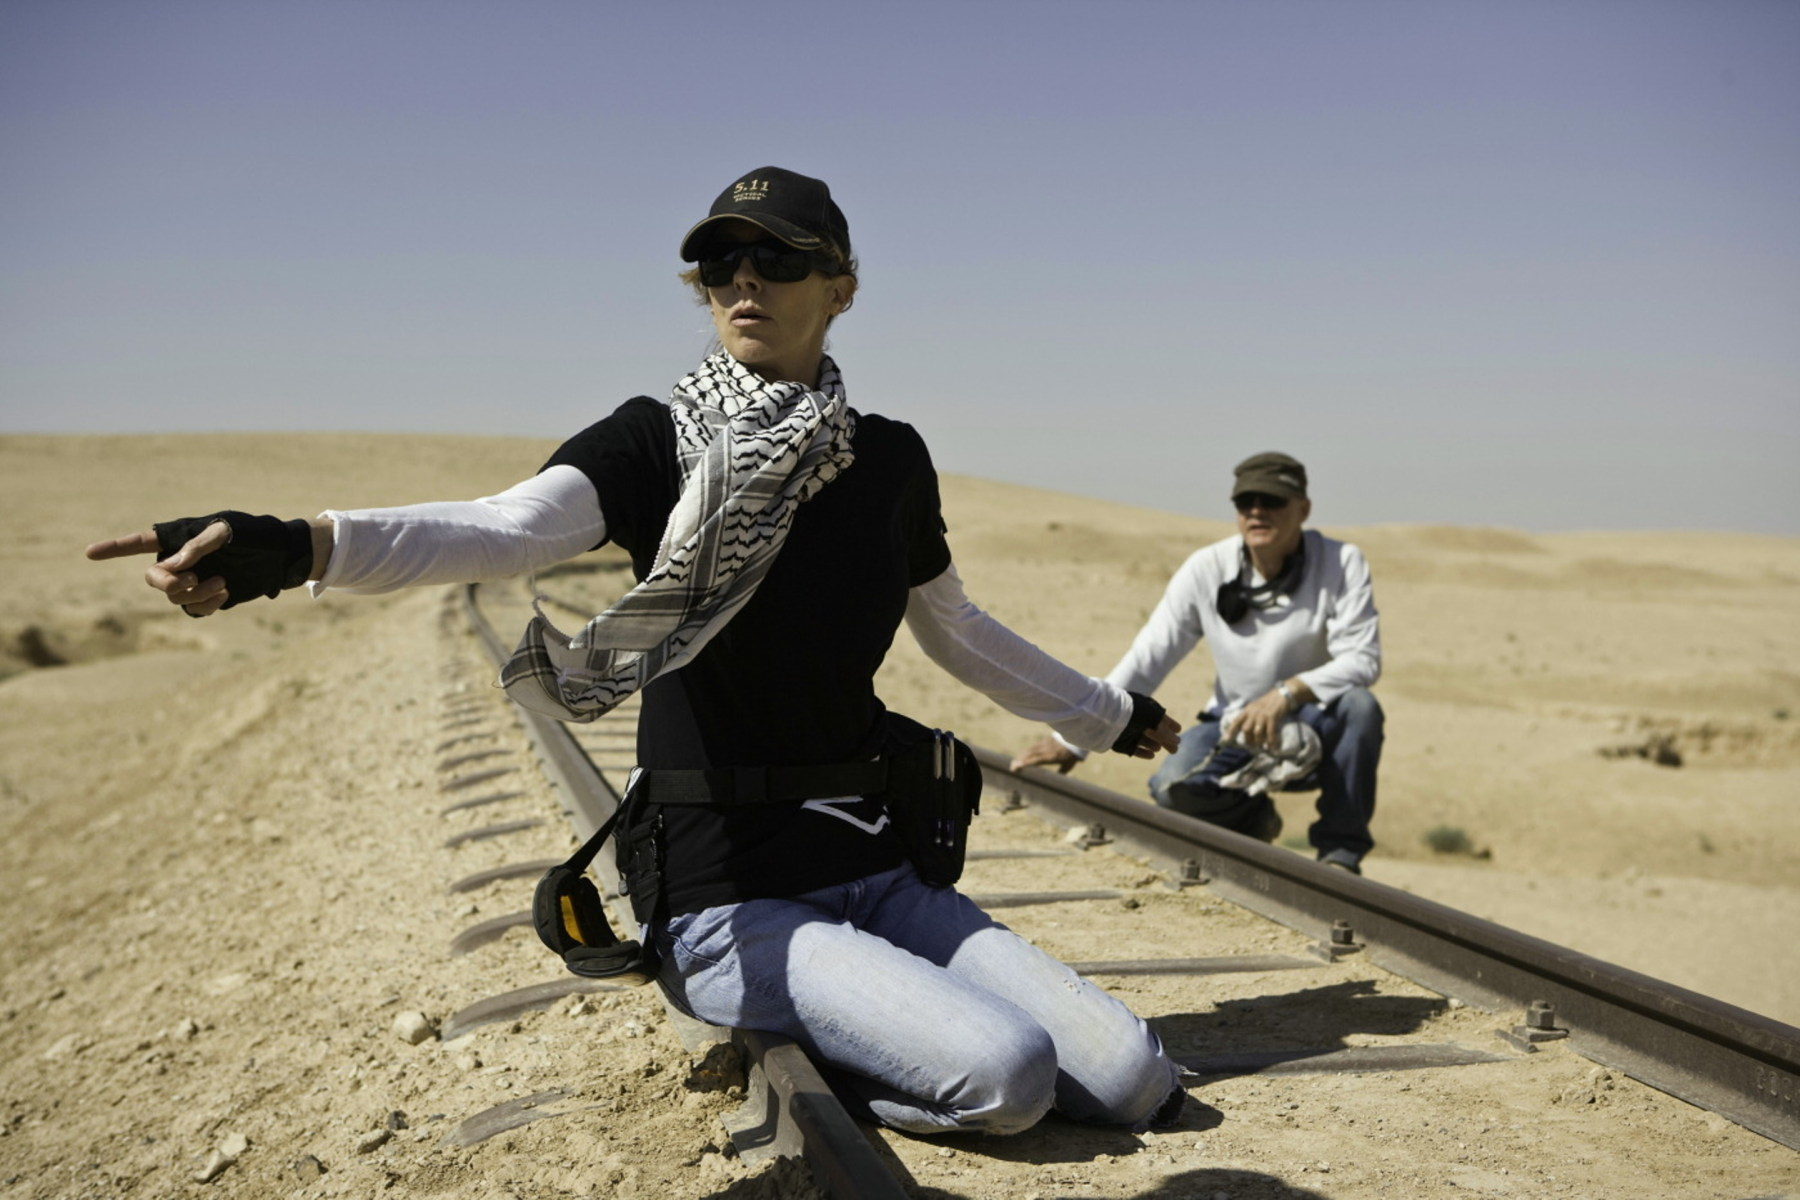 On Location : The Hurt Locker (2008) Behind the Scenes